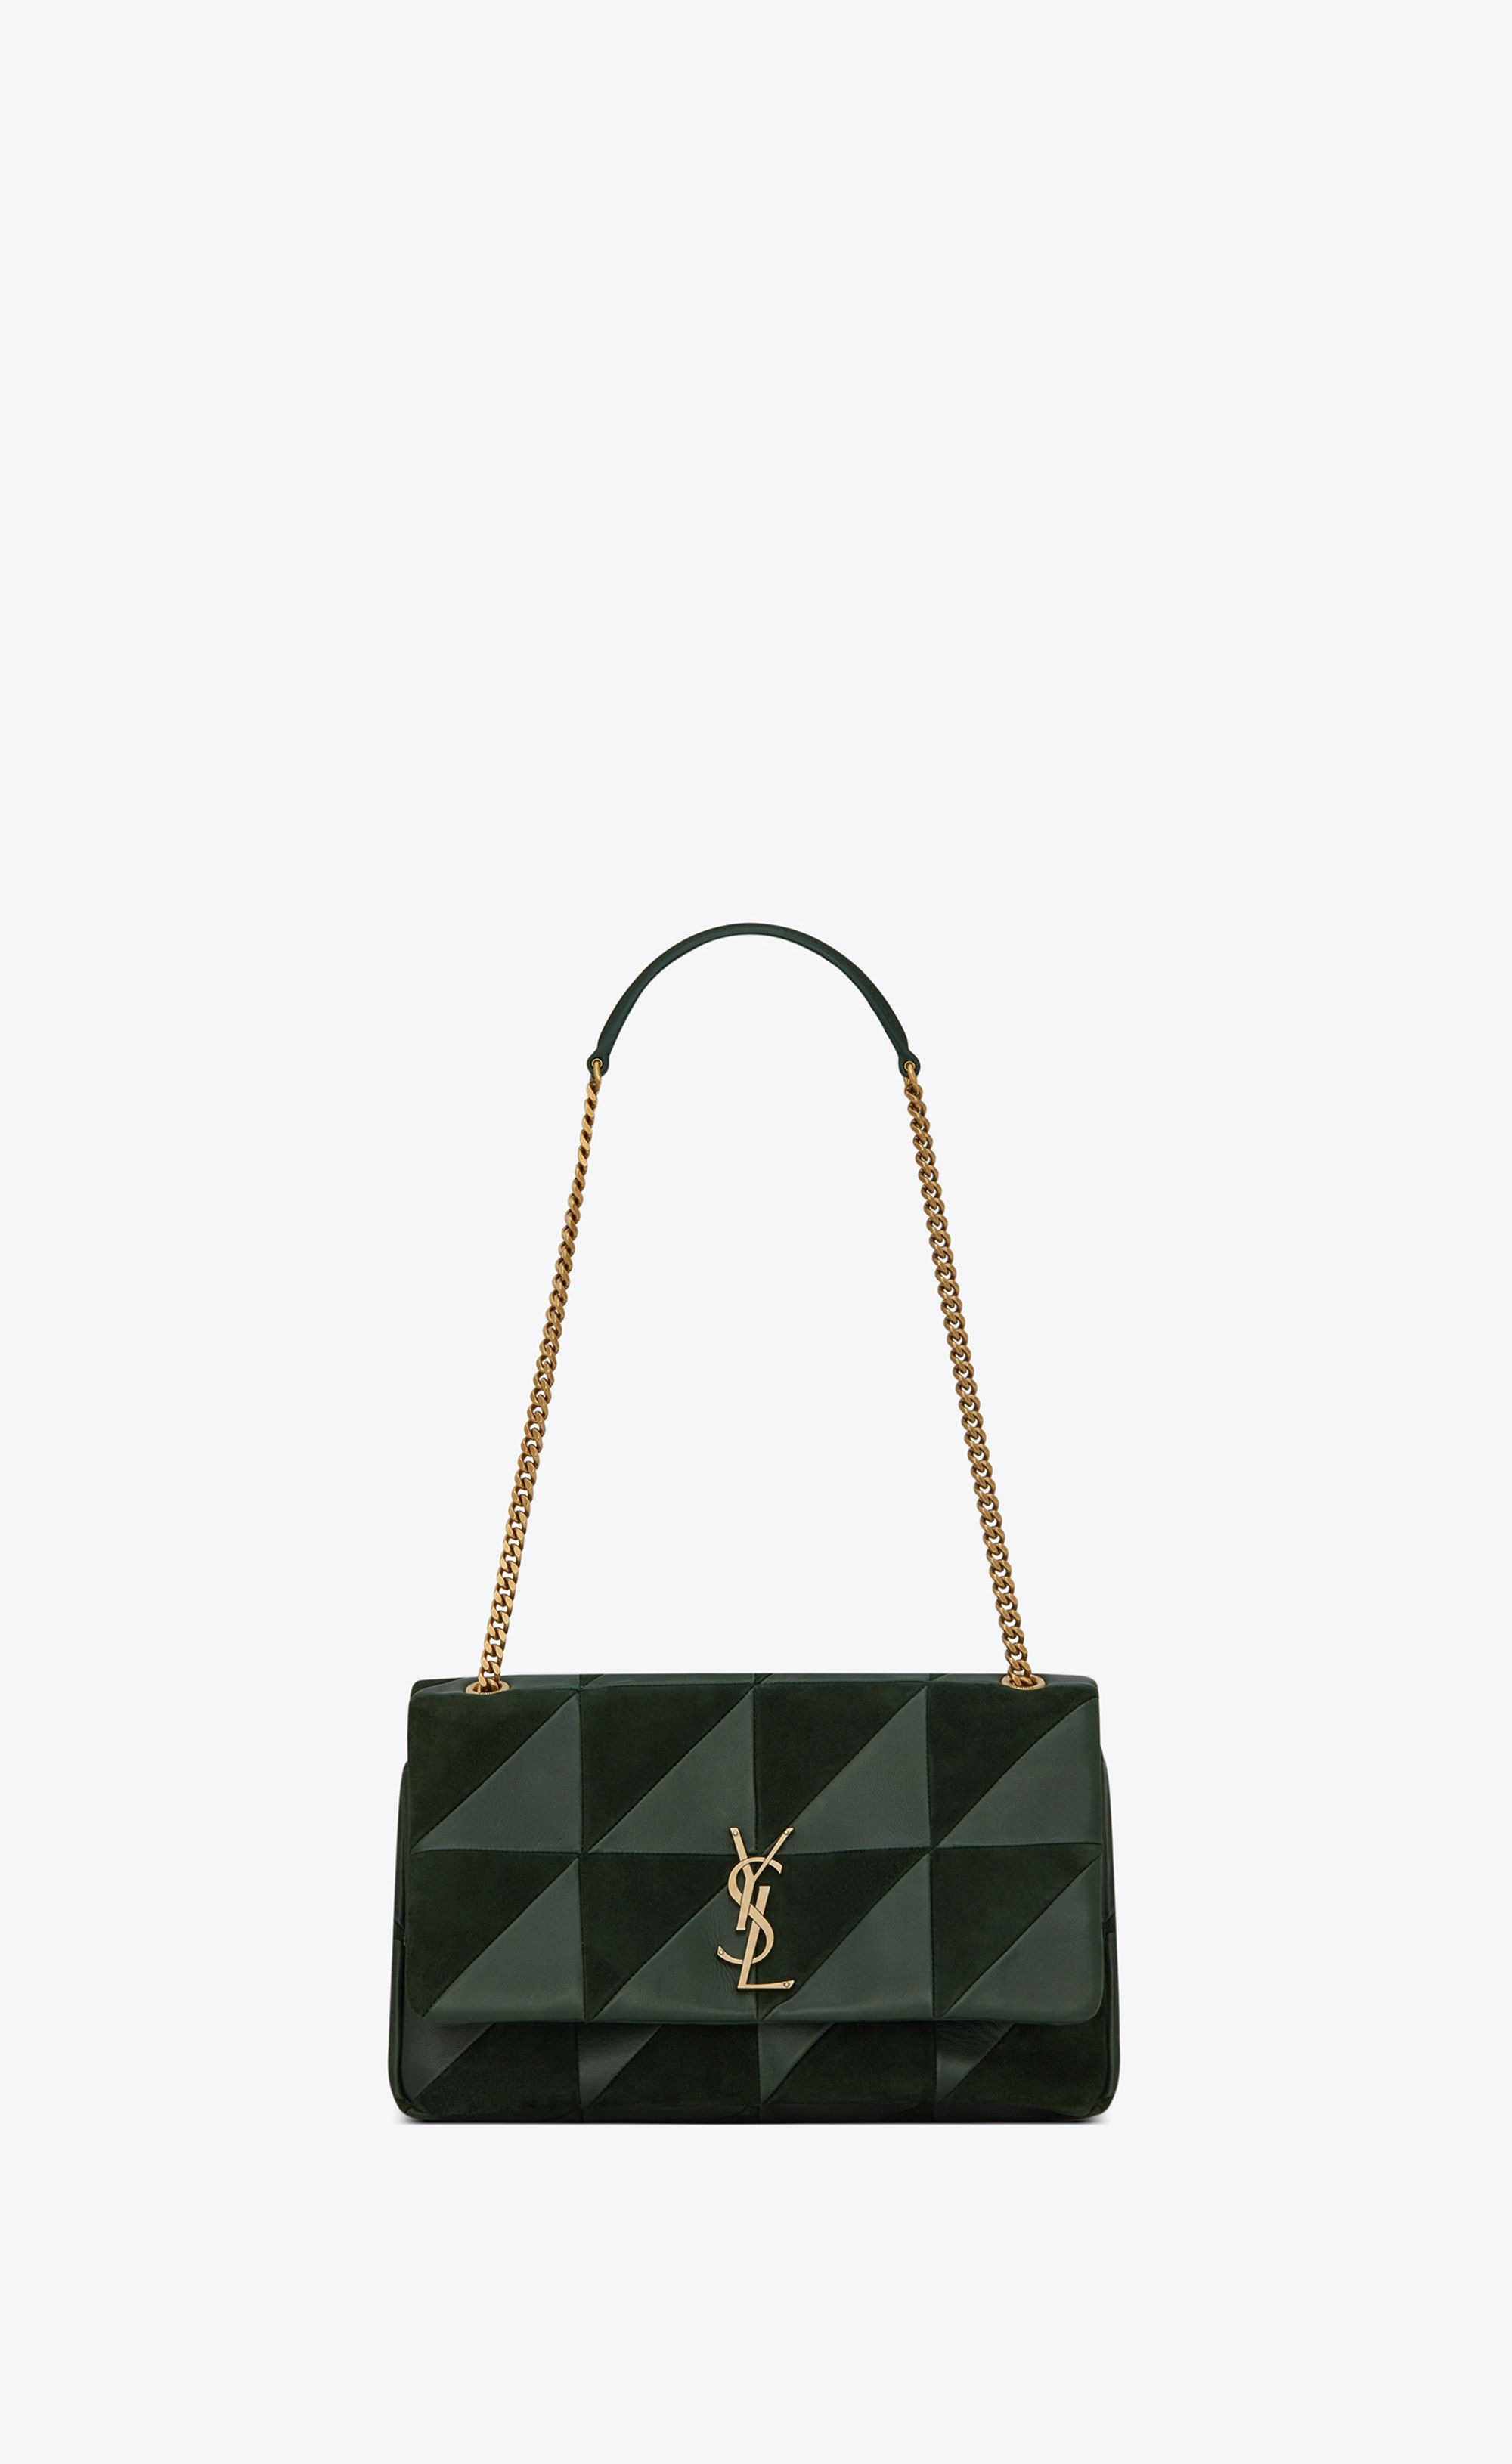 Saint Laurent Medium Jamie Bag In Dark Green Leather And Suede Patchwork  2d7ab013b561e